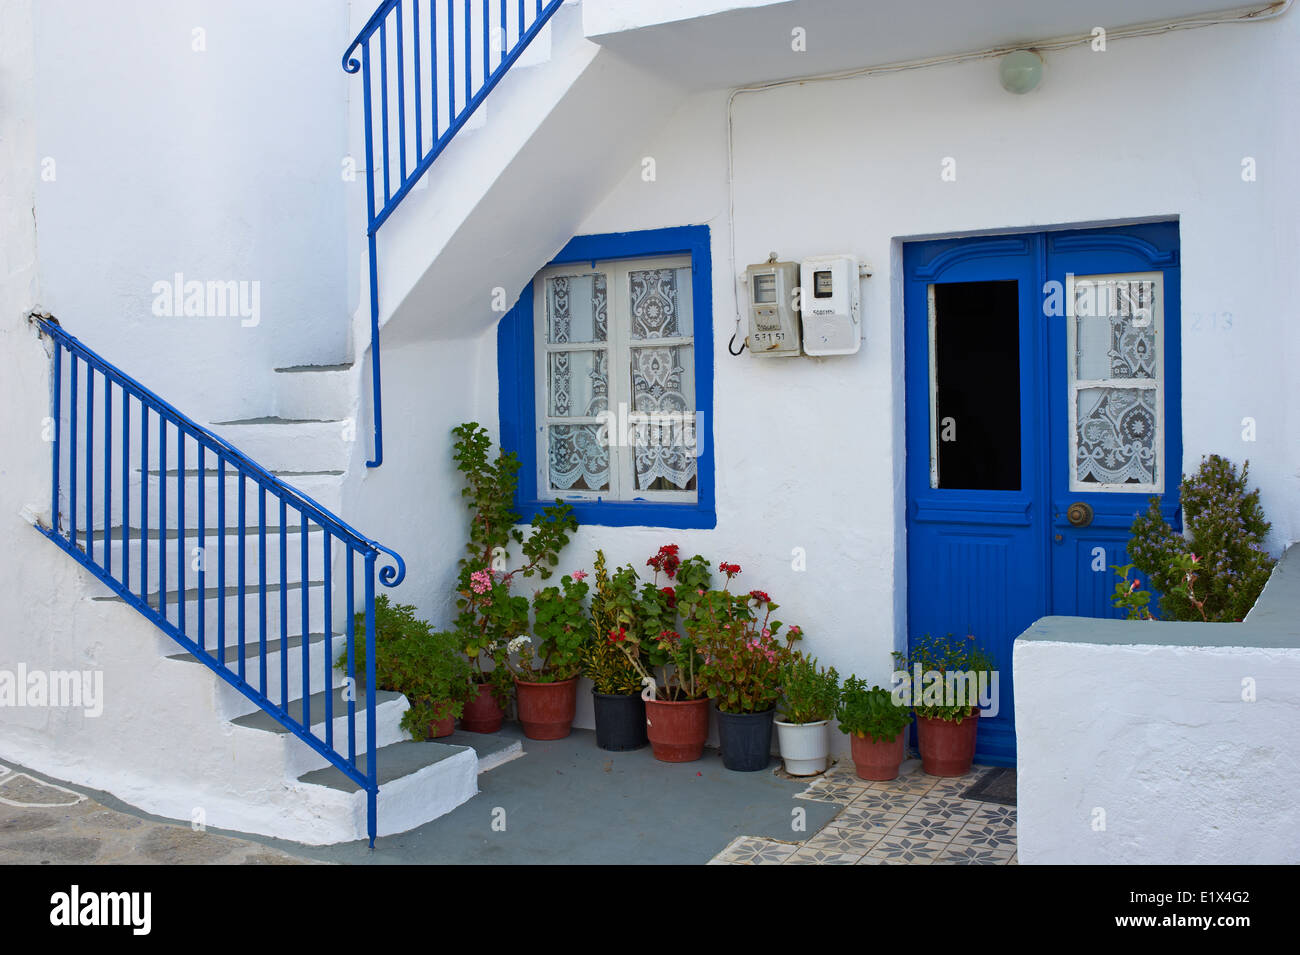 Greece, Cyclades islands, Milos, Plaka city the island capital - Stock Image